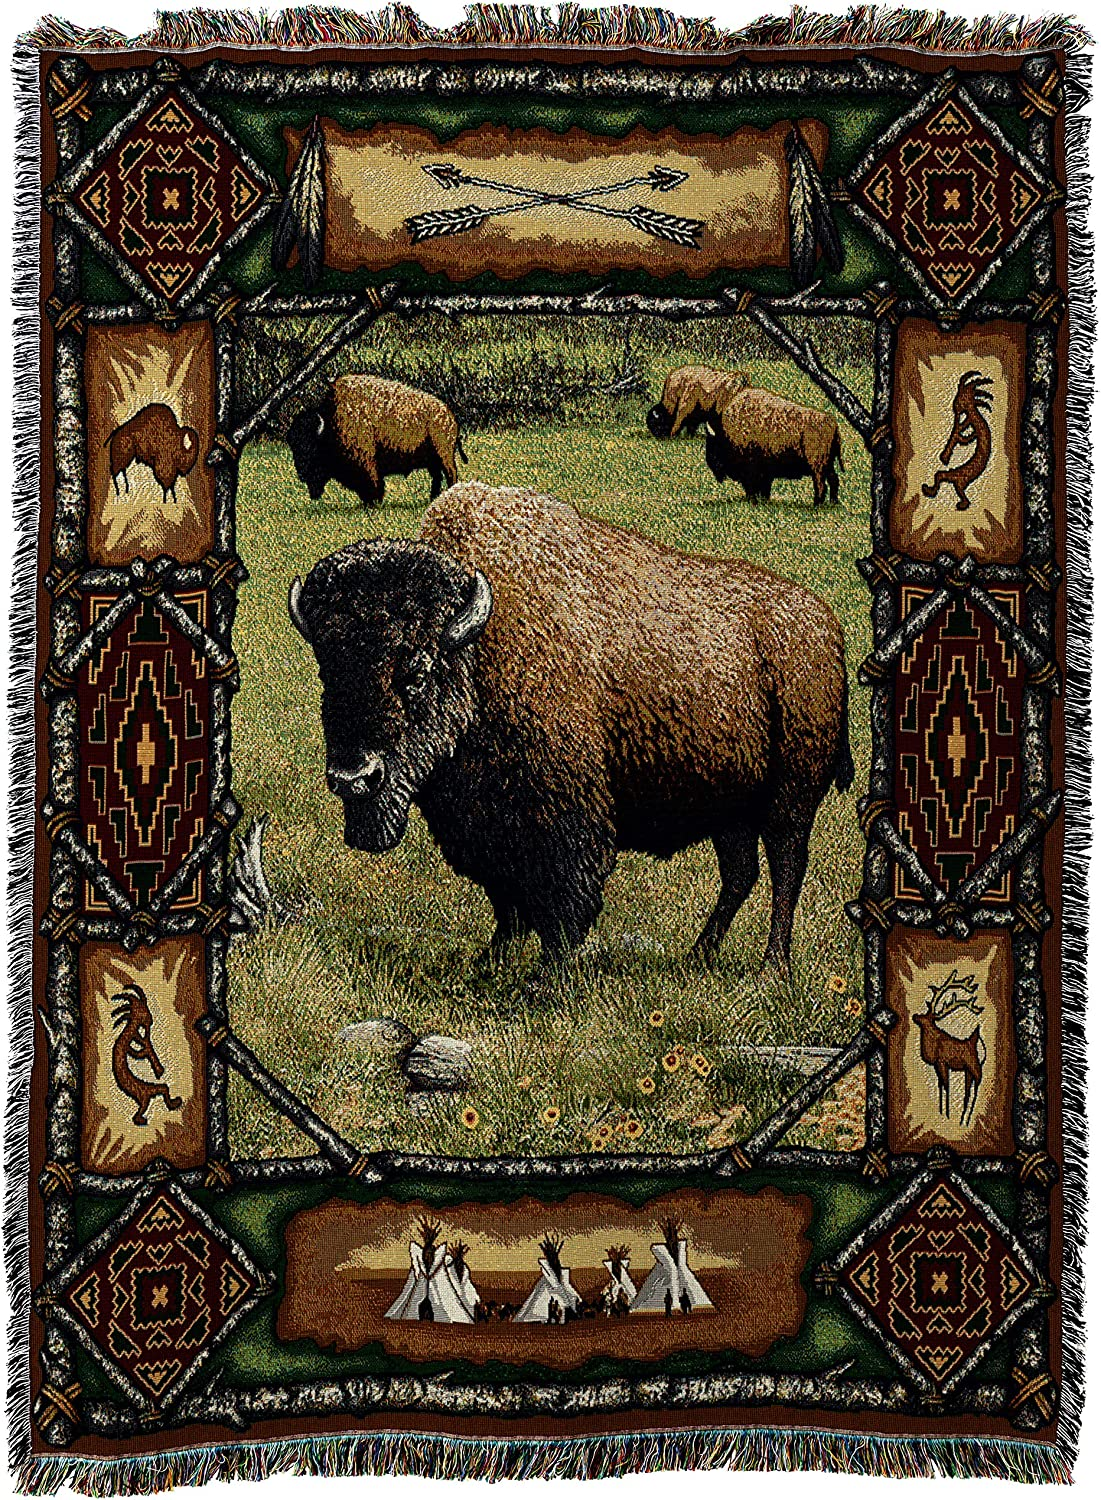 Pure Country Weavers   Buffalo Lodge Cabin Hunting Decor Woven Tapestry Throw Blanket with Fringe Cotton USA 72x54